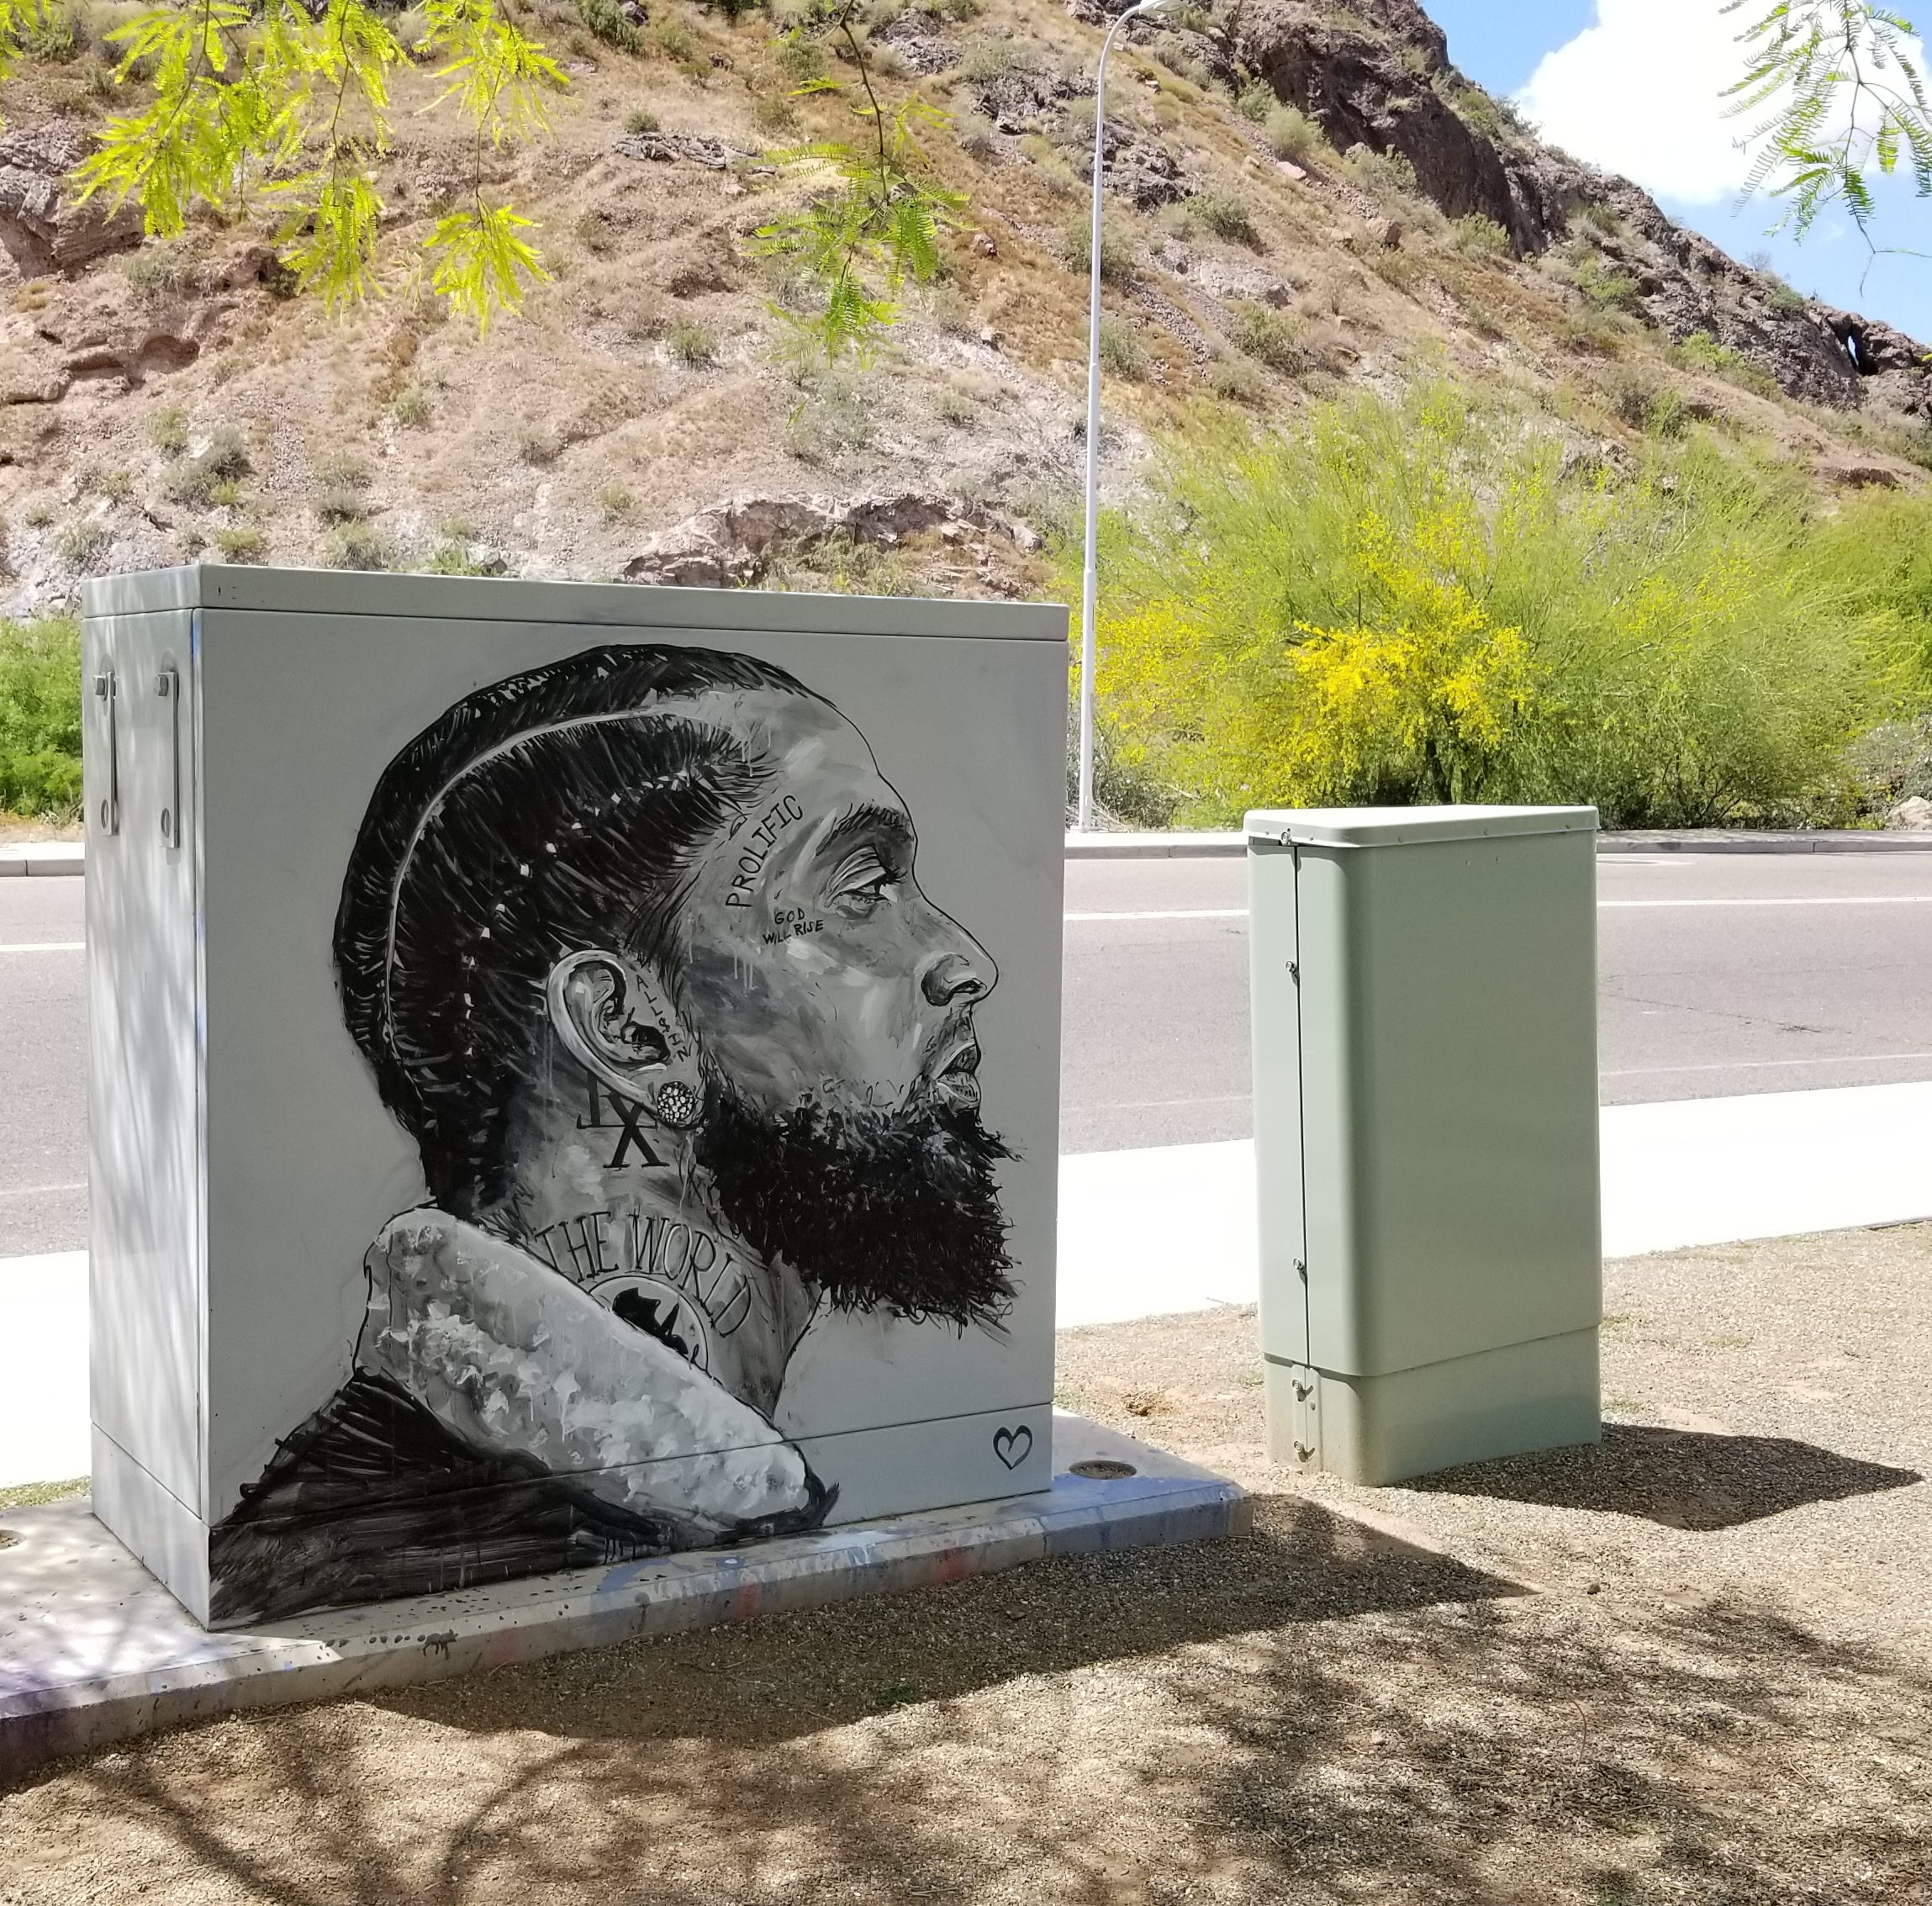 Nipsey Hussle honored in Tempe street art: Here's who is behind the mural and where to see it